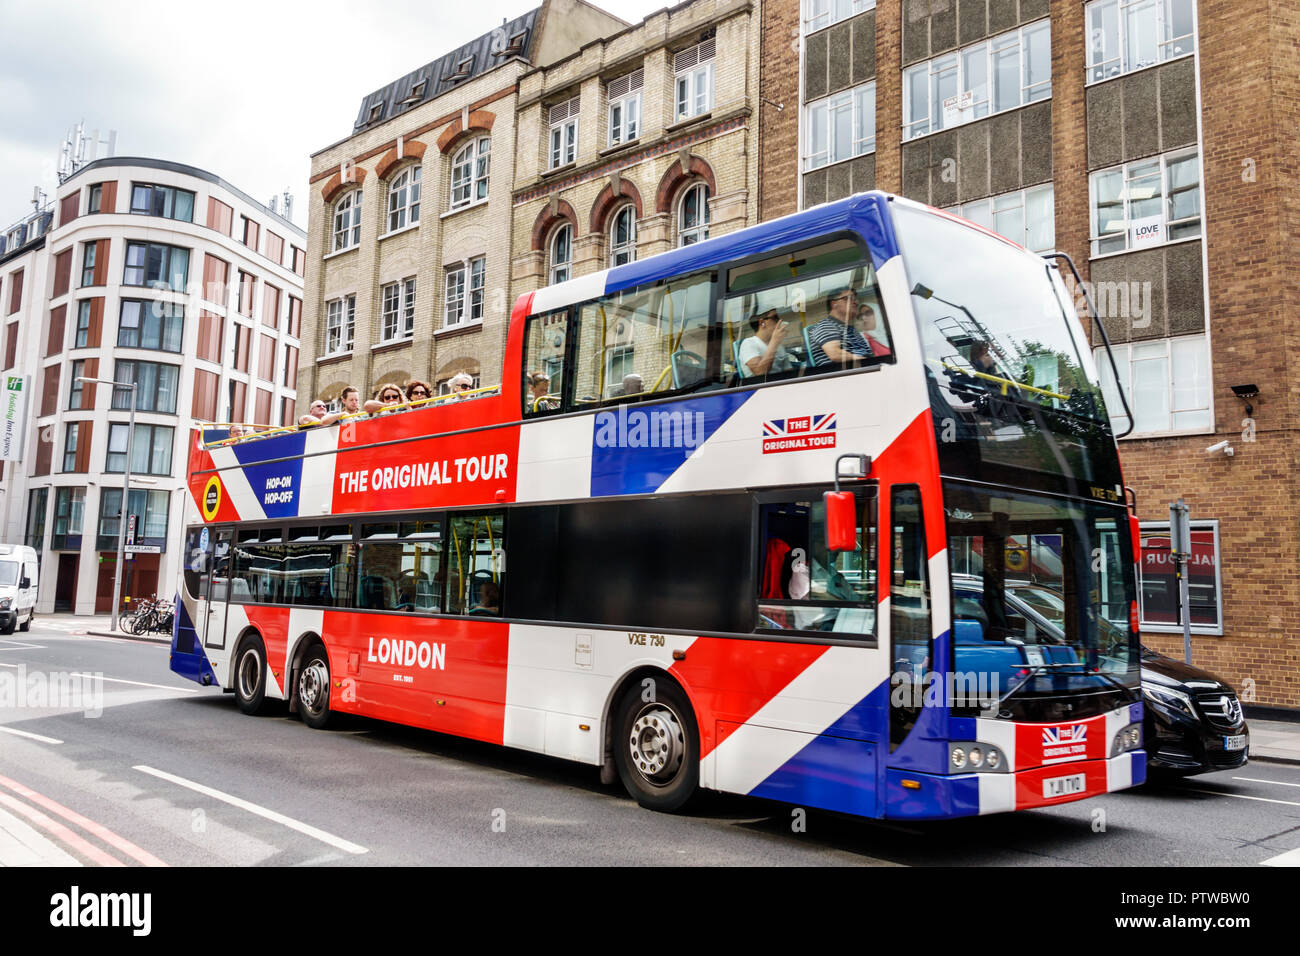 London England United Kingdom Great Britain Southwark open-top double-decker sightseeing bus passenger The Original Tour - Stock Image